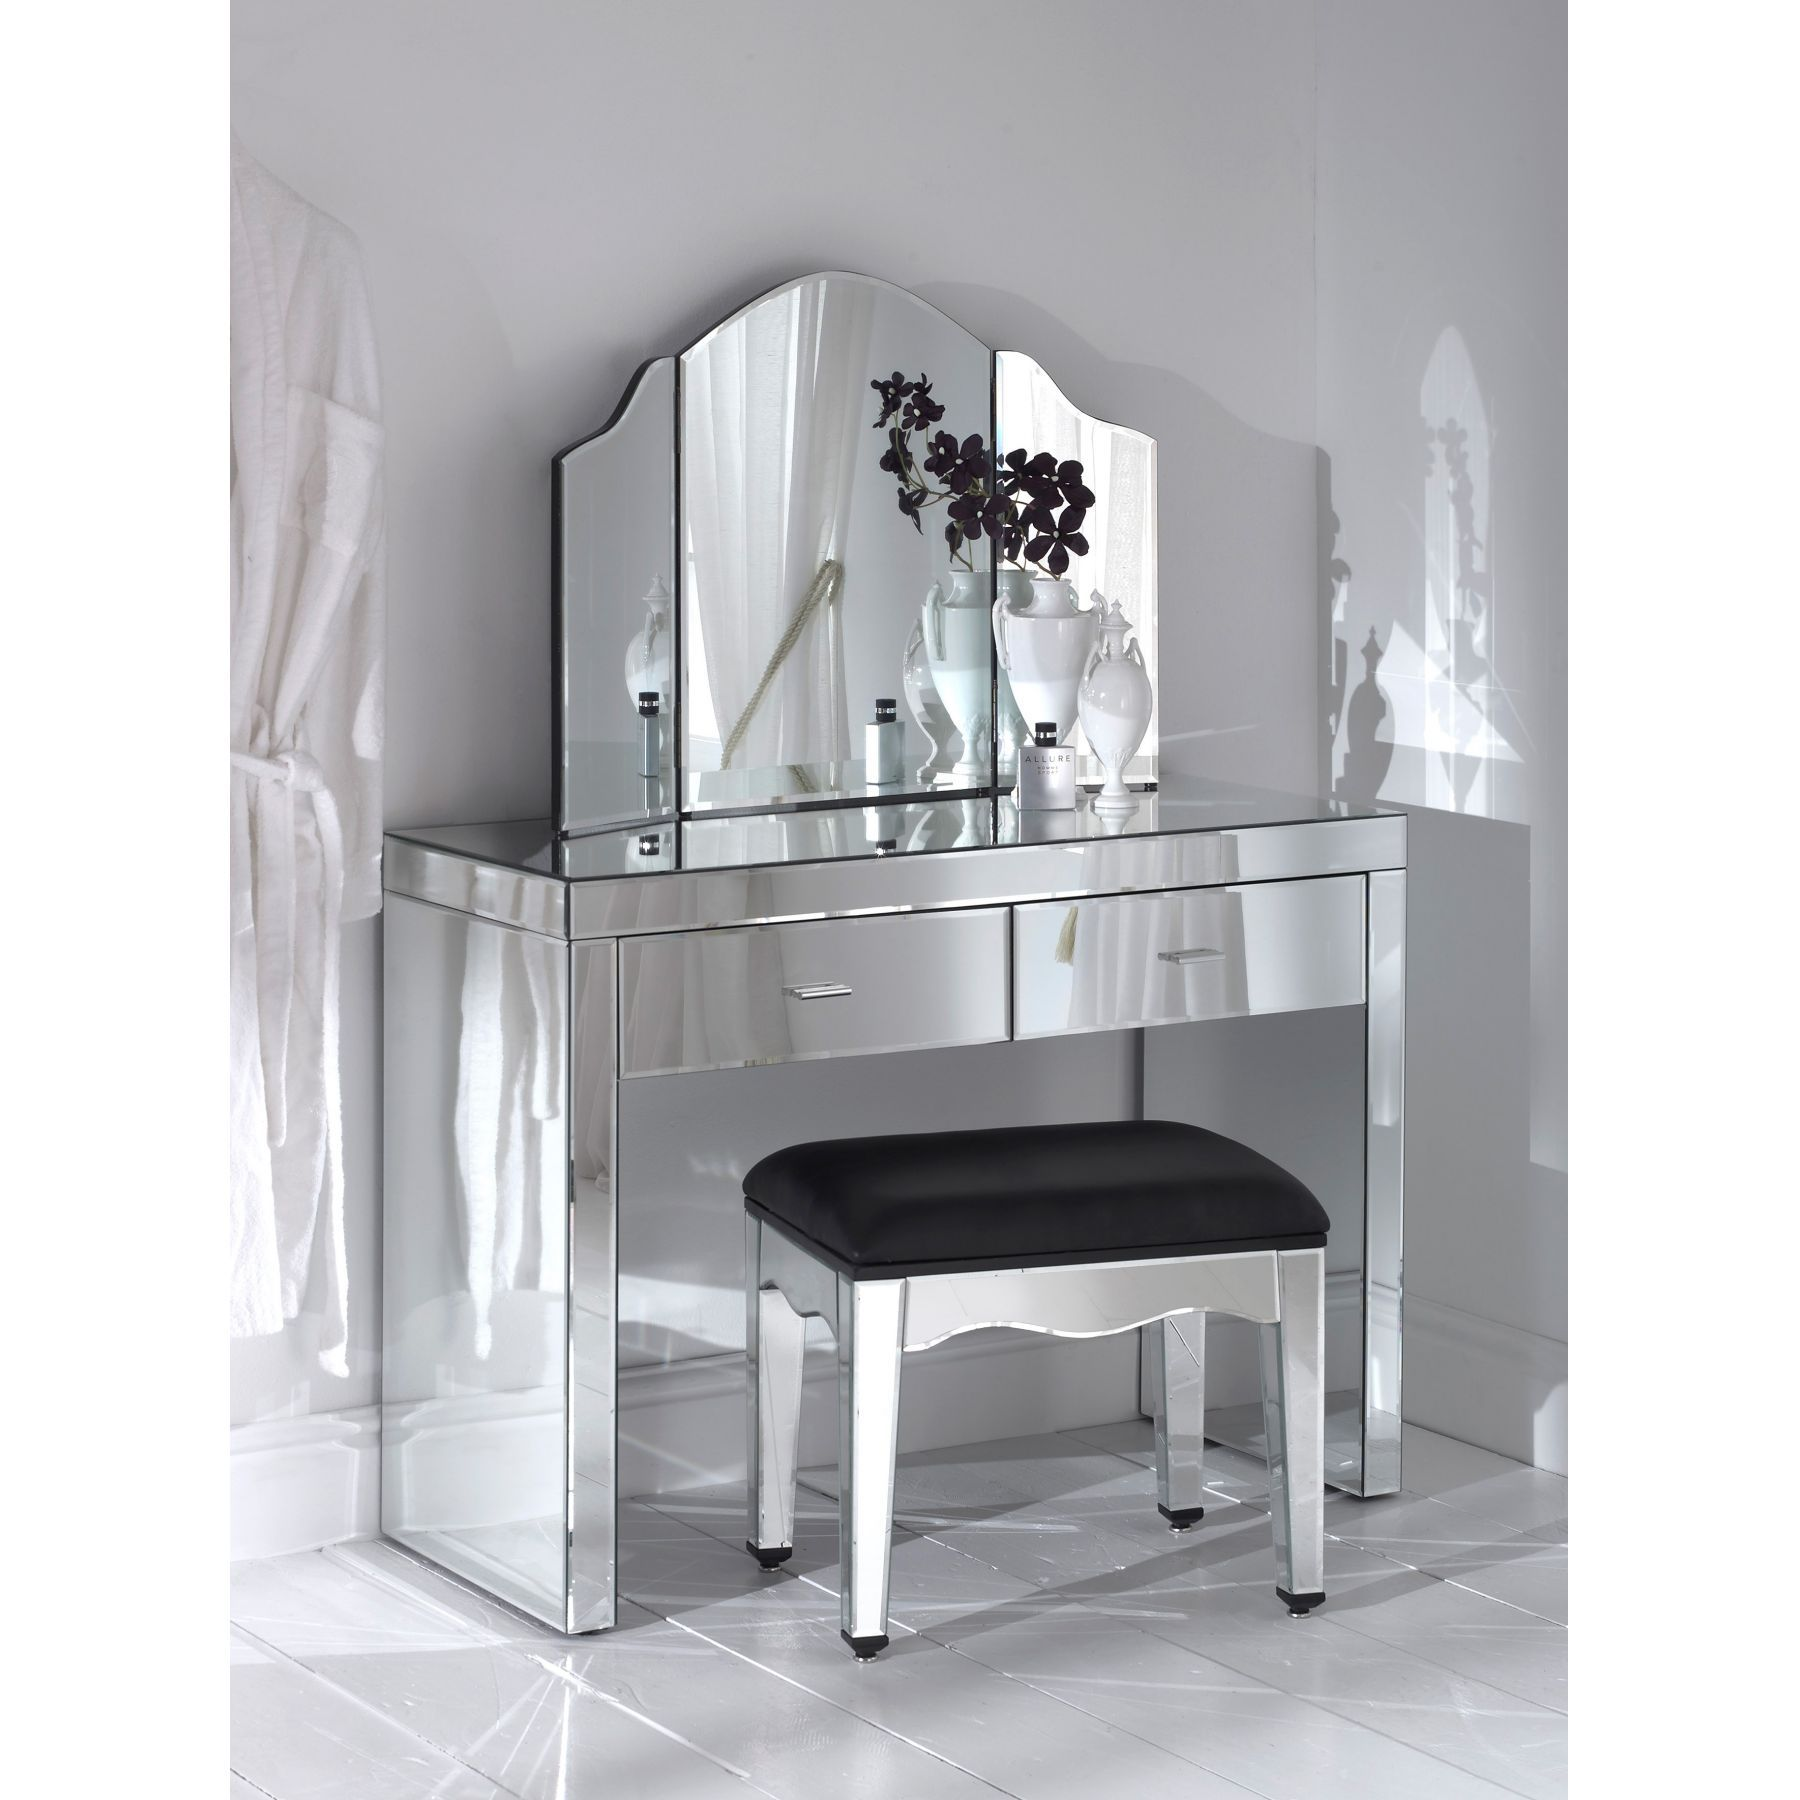 Romano Mirrored Dressing Table Set @ Homes Direct Buy Elegant French And  Venetian Furniture At UKu0027s Lowest Prices. As Featured On TVu0027s 60 Minute  Makeover